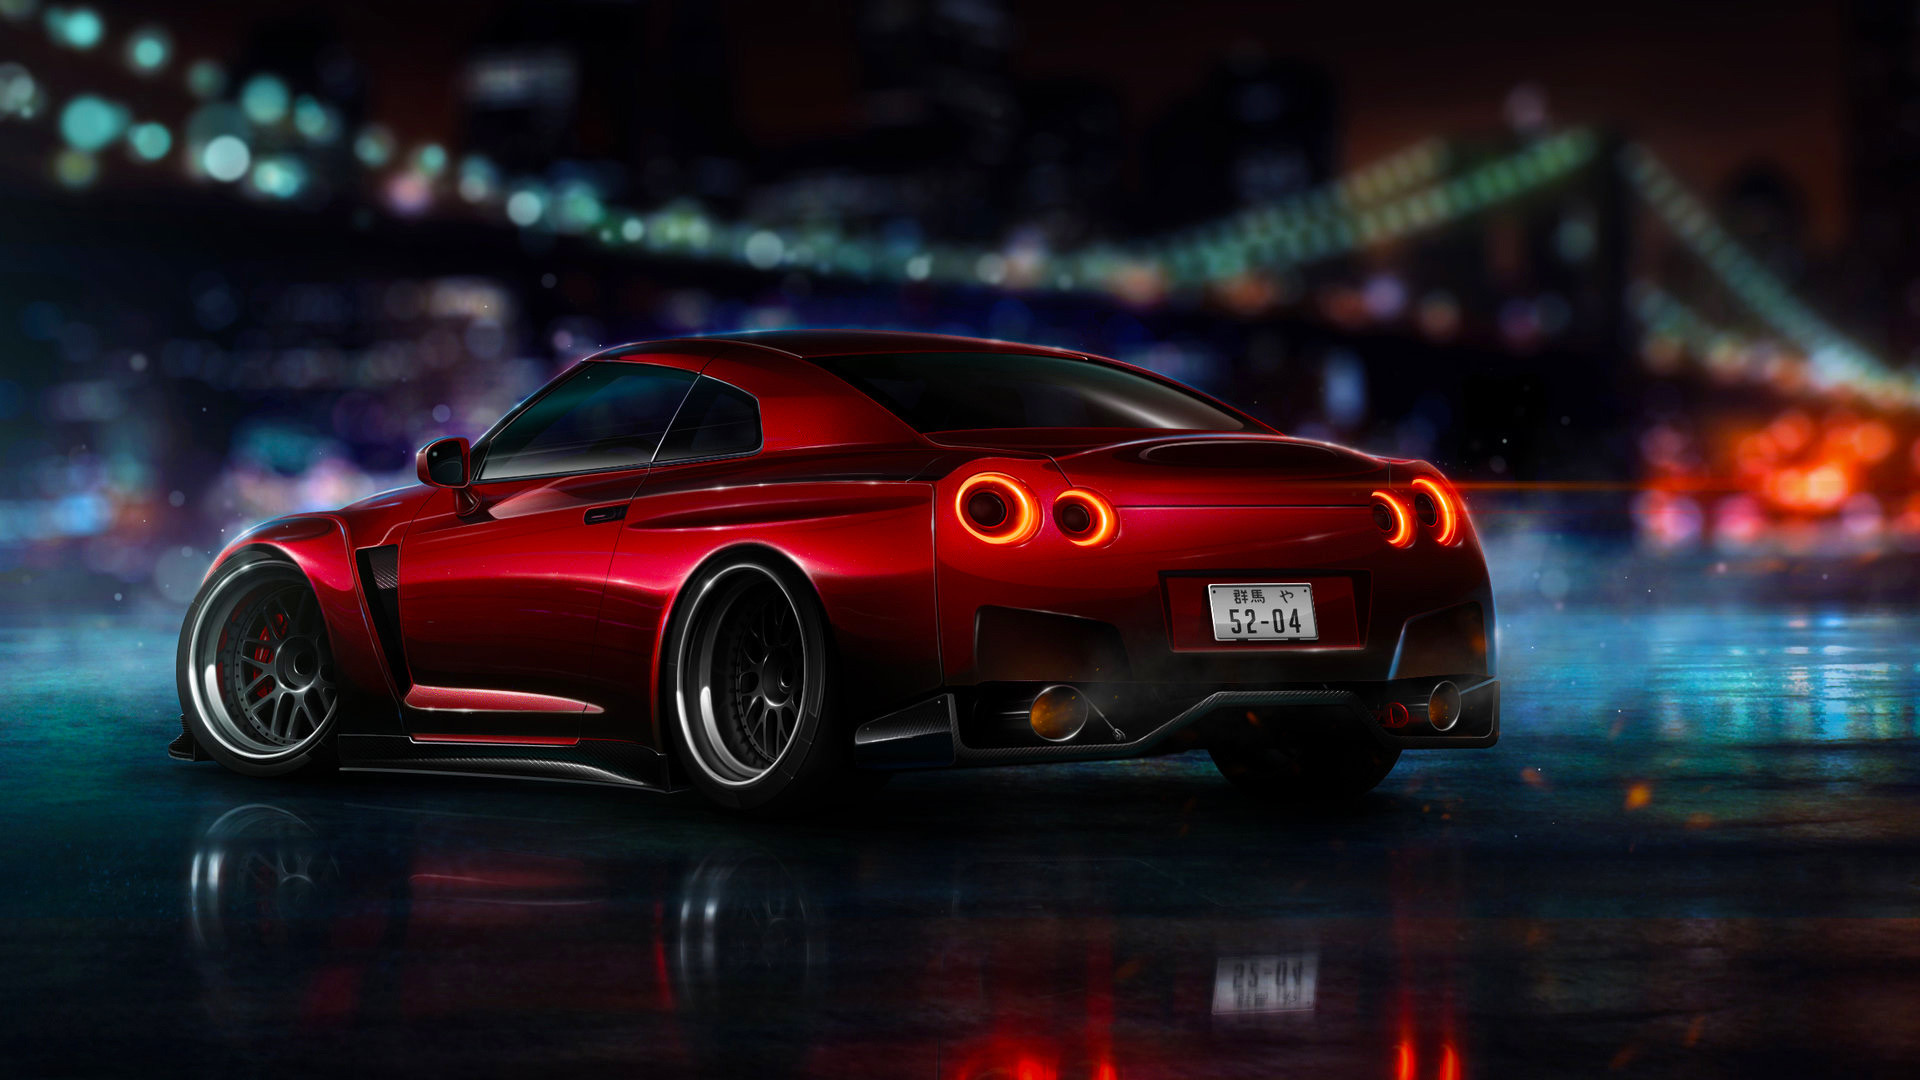 Res: 1920x1080, Tags: Nissan